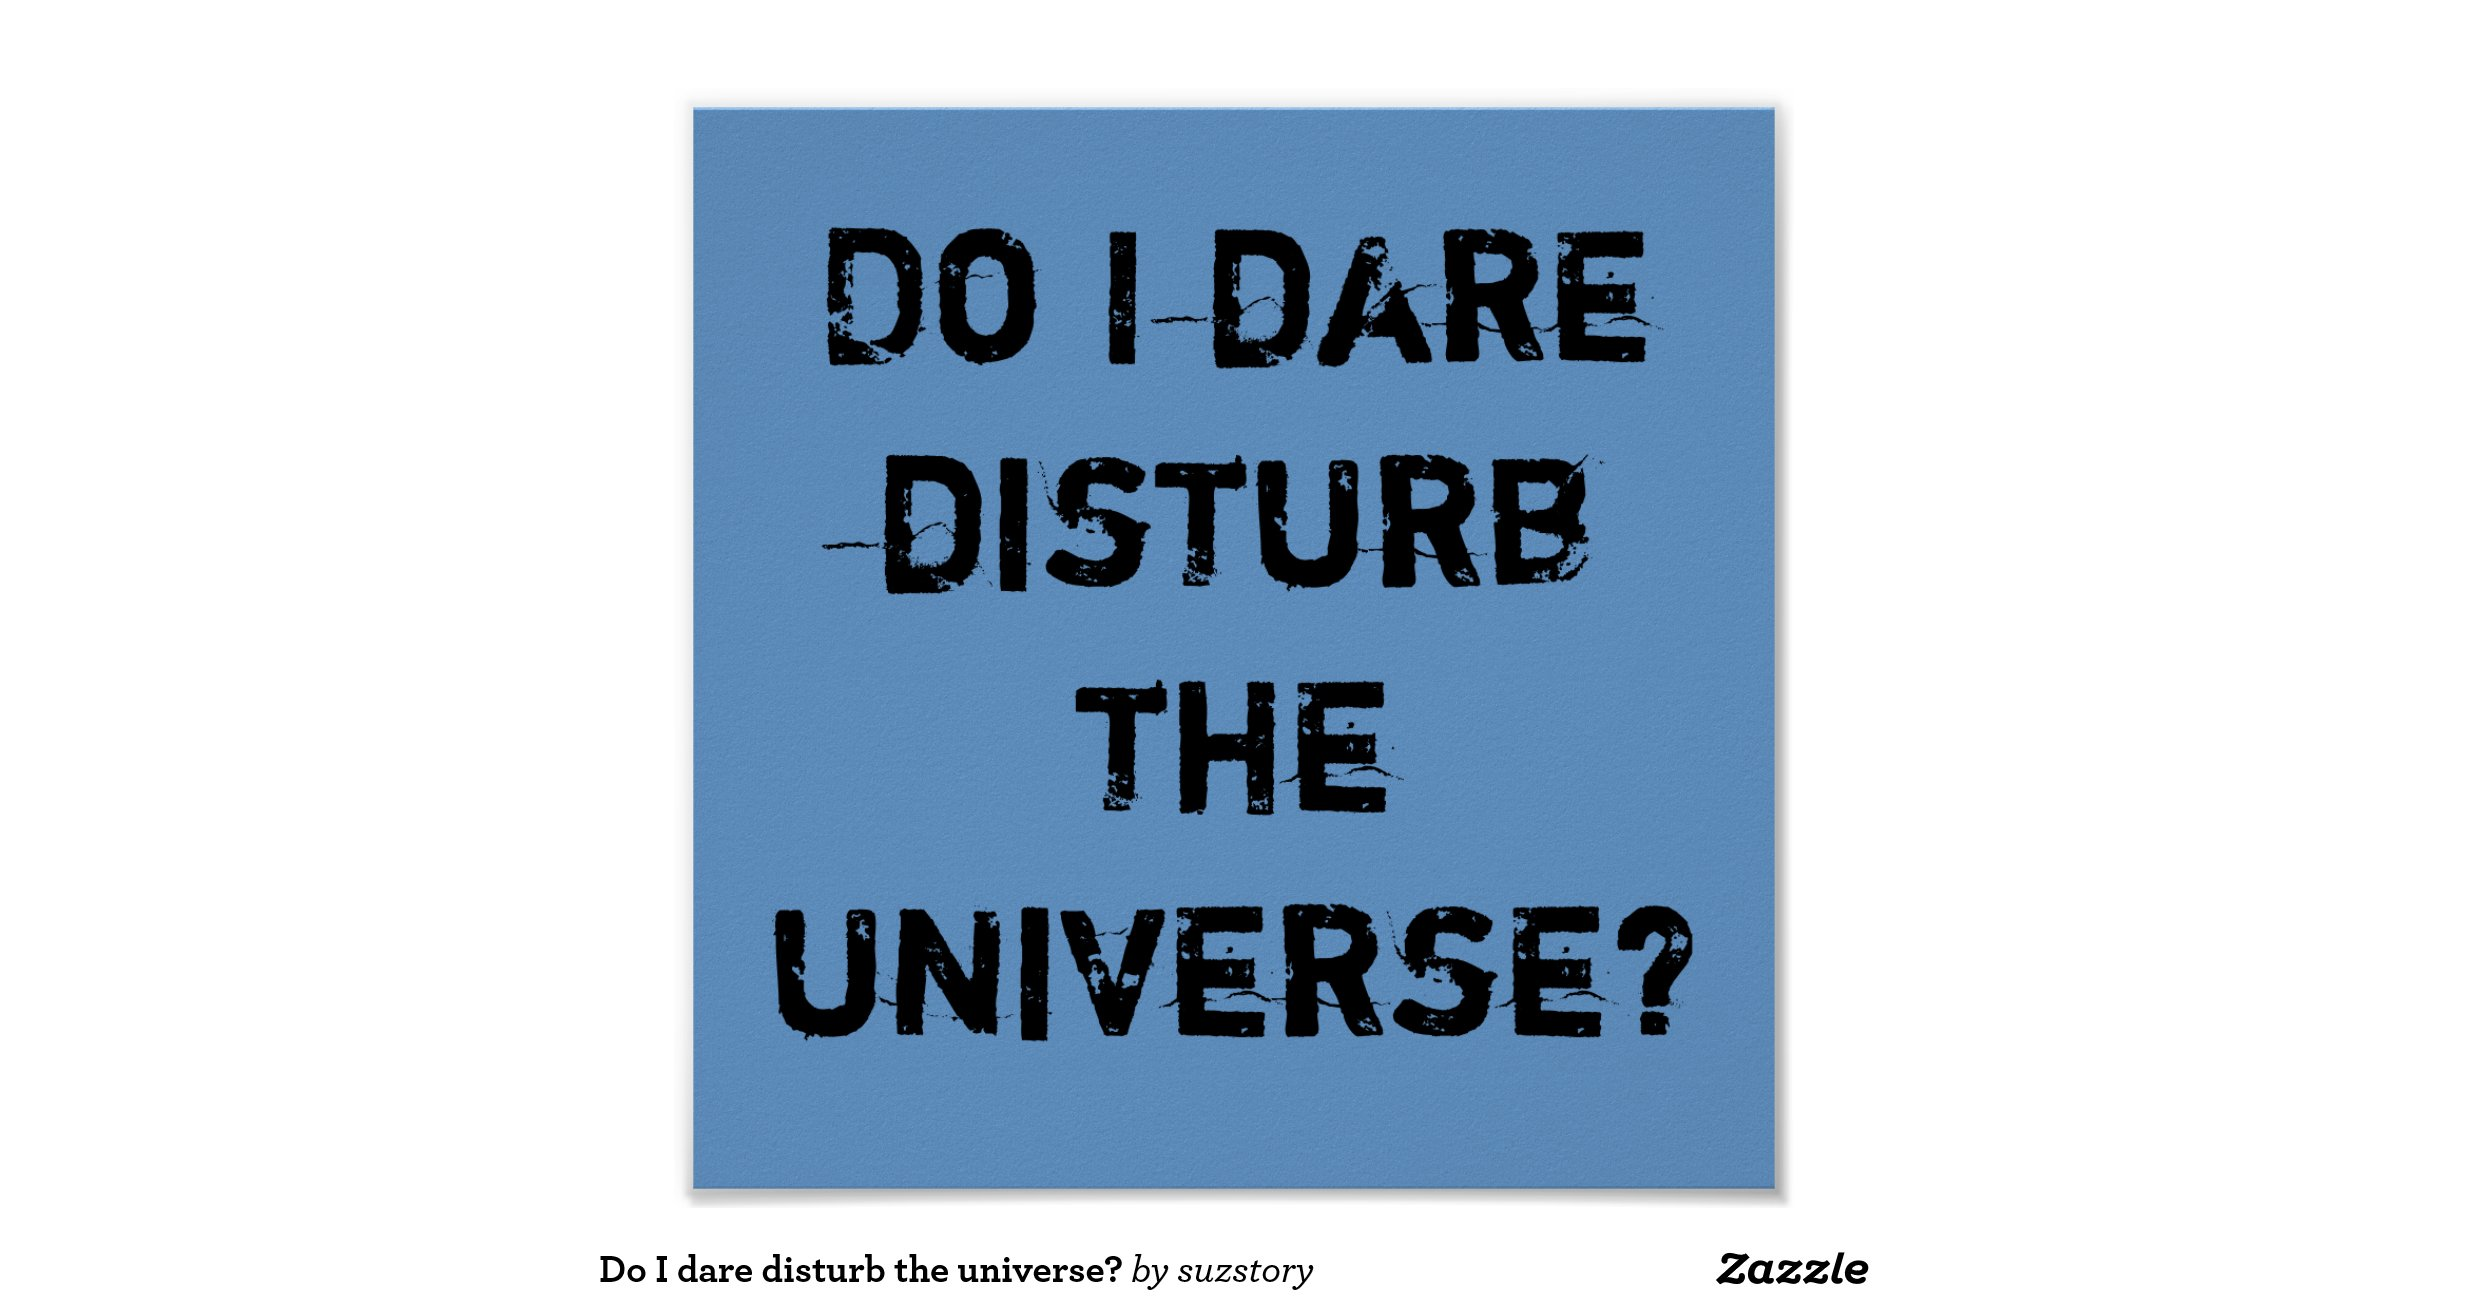 daring to disturb the universe essay It is in this way that eliot is able to express both his interpersonal sense of isolation where he does not dare to disturb other people in a social setting as well as the dread and confusion that develops from symbolically daring to disturb the universe through existential inquiry.